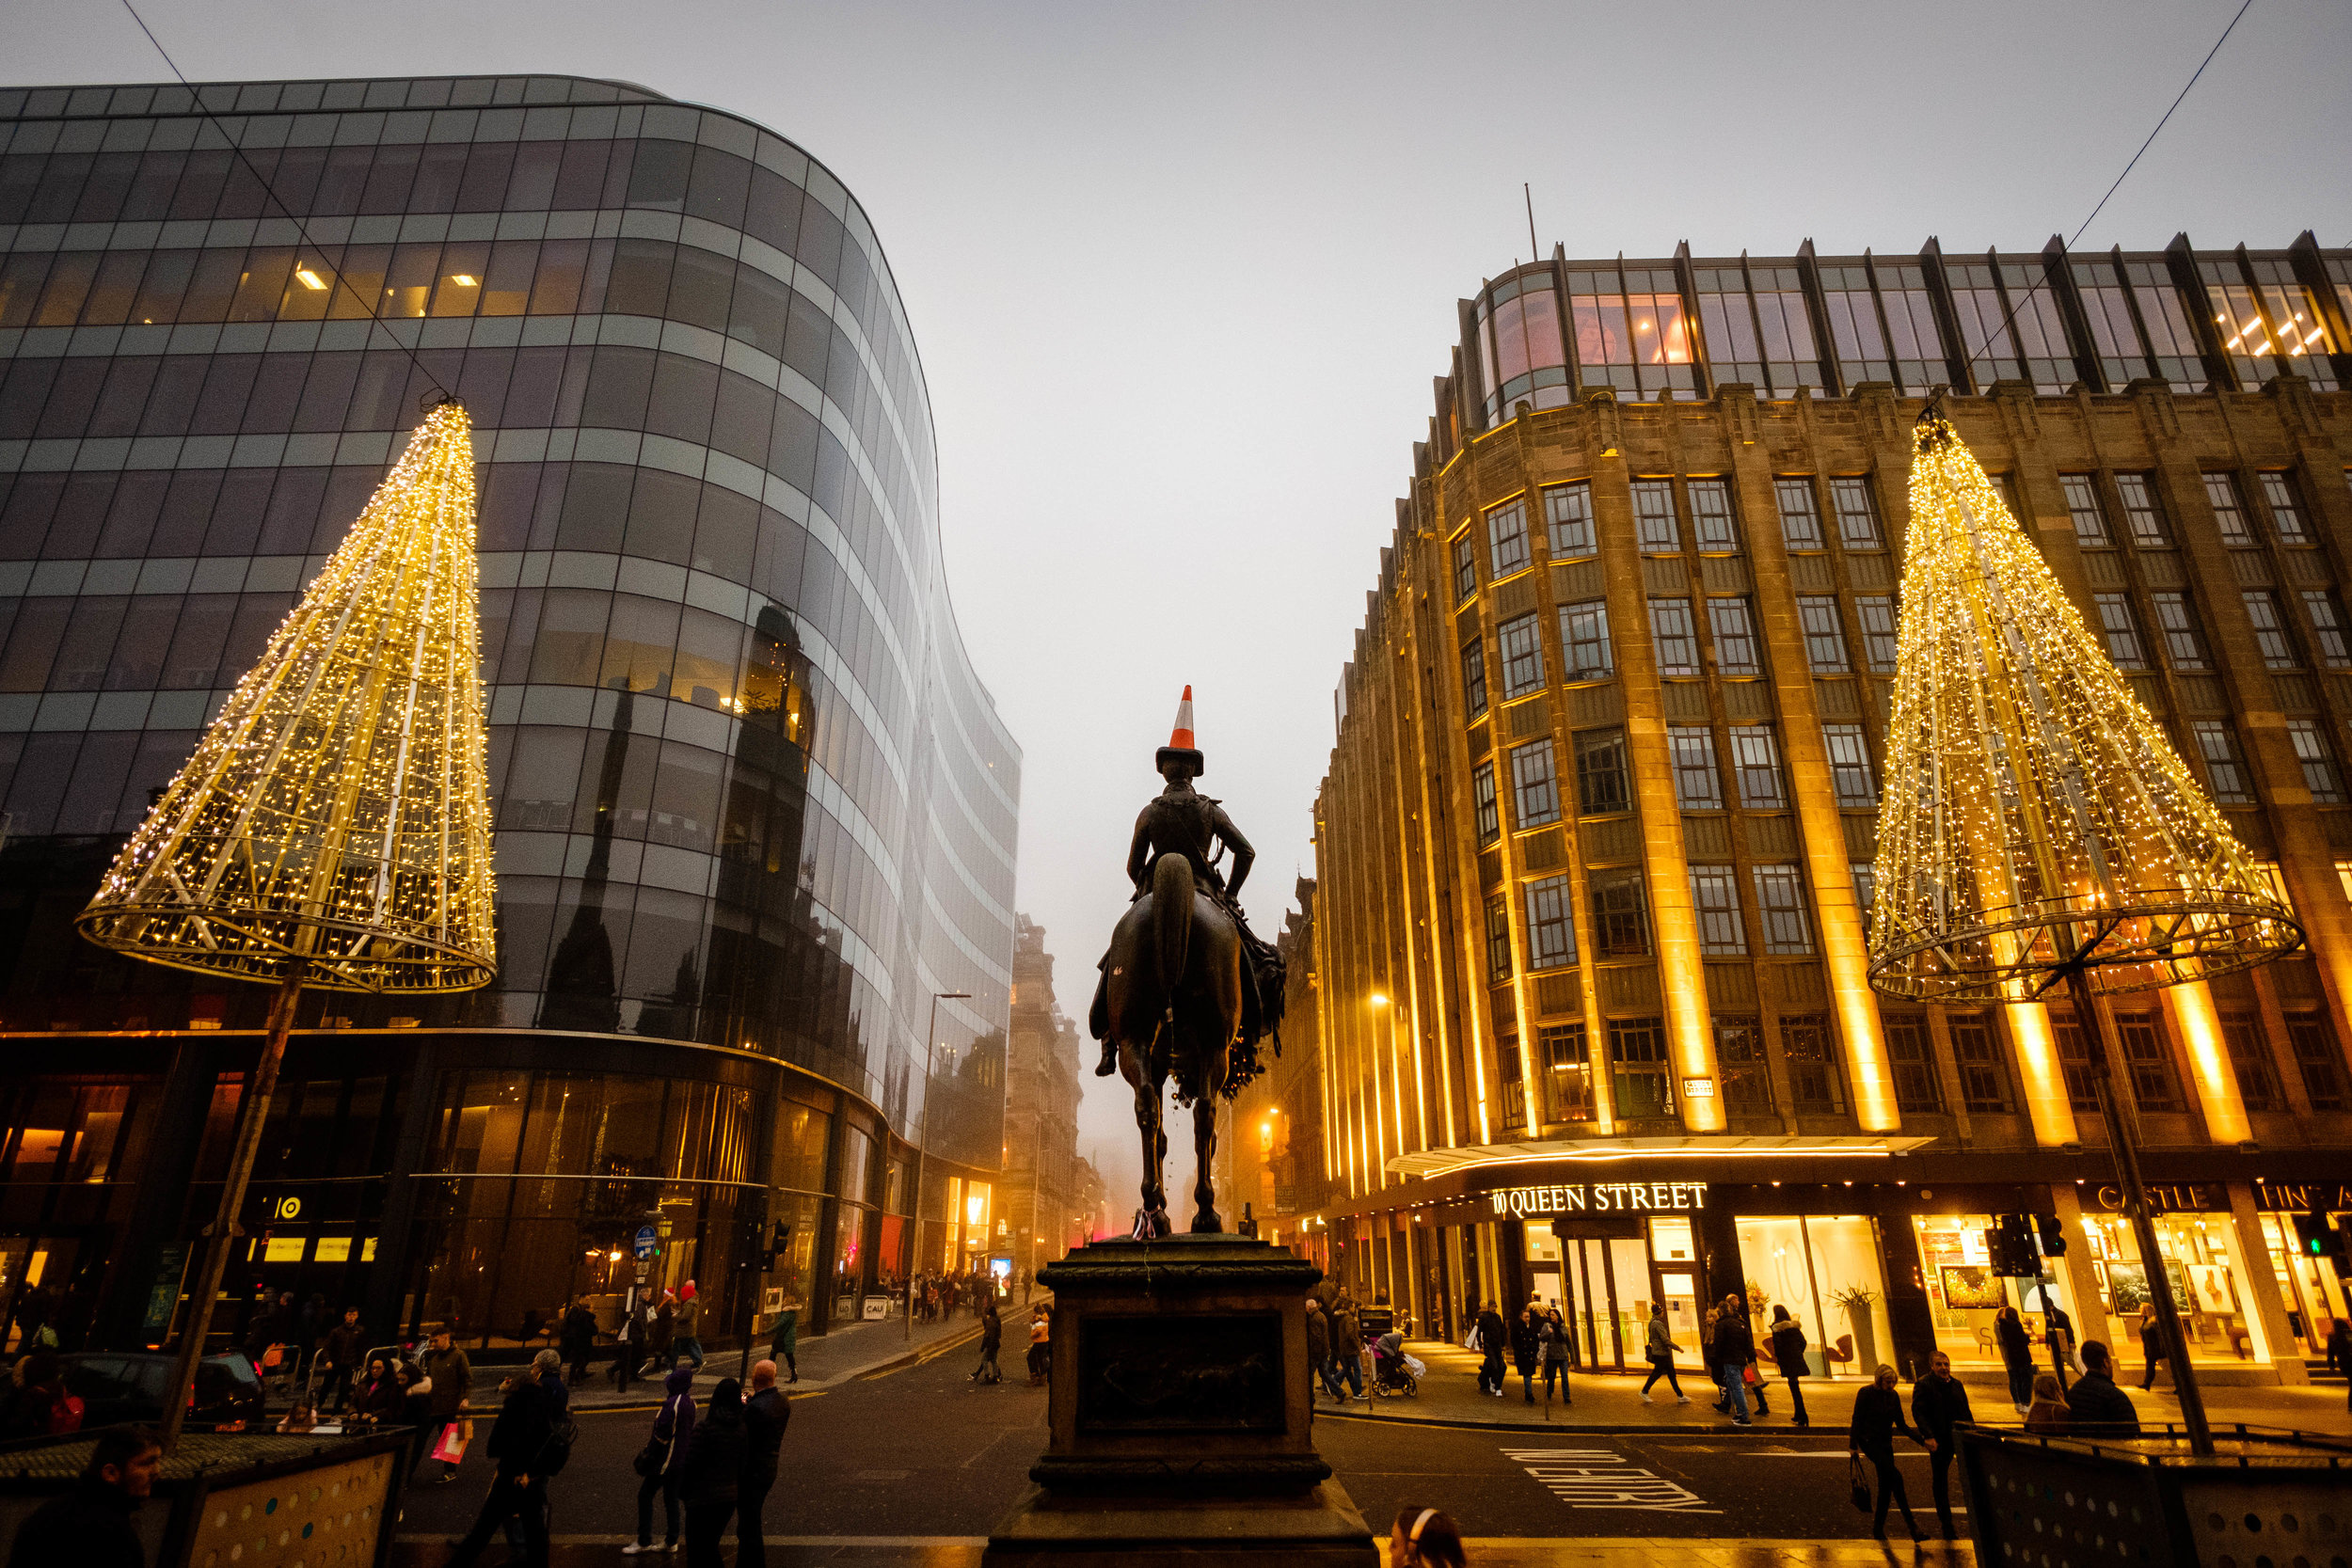 Glasgow at Christmas - Daily Life and People 1.jpg